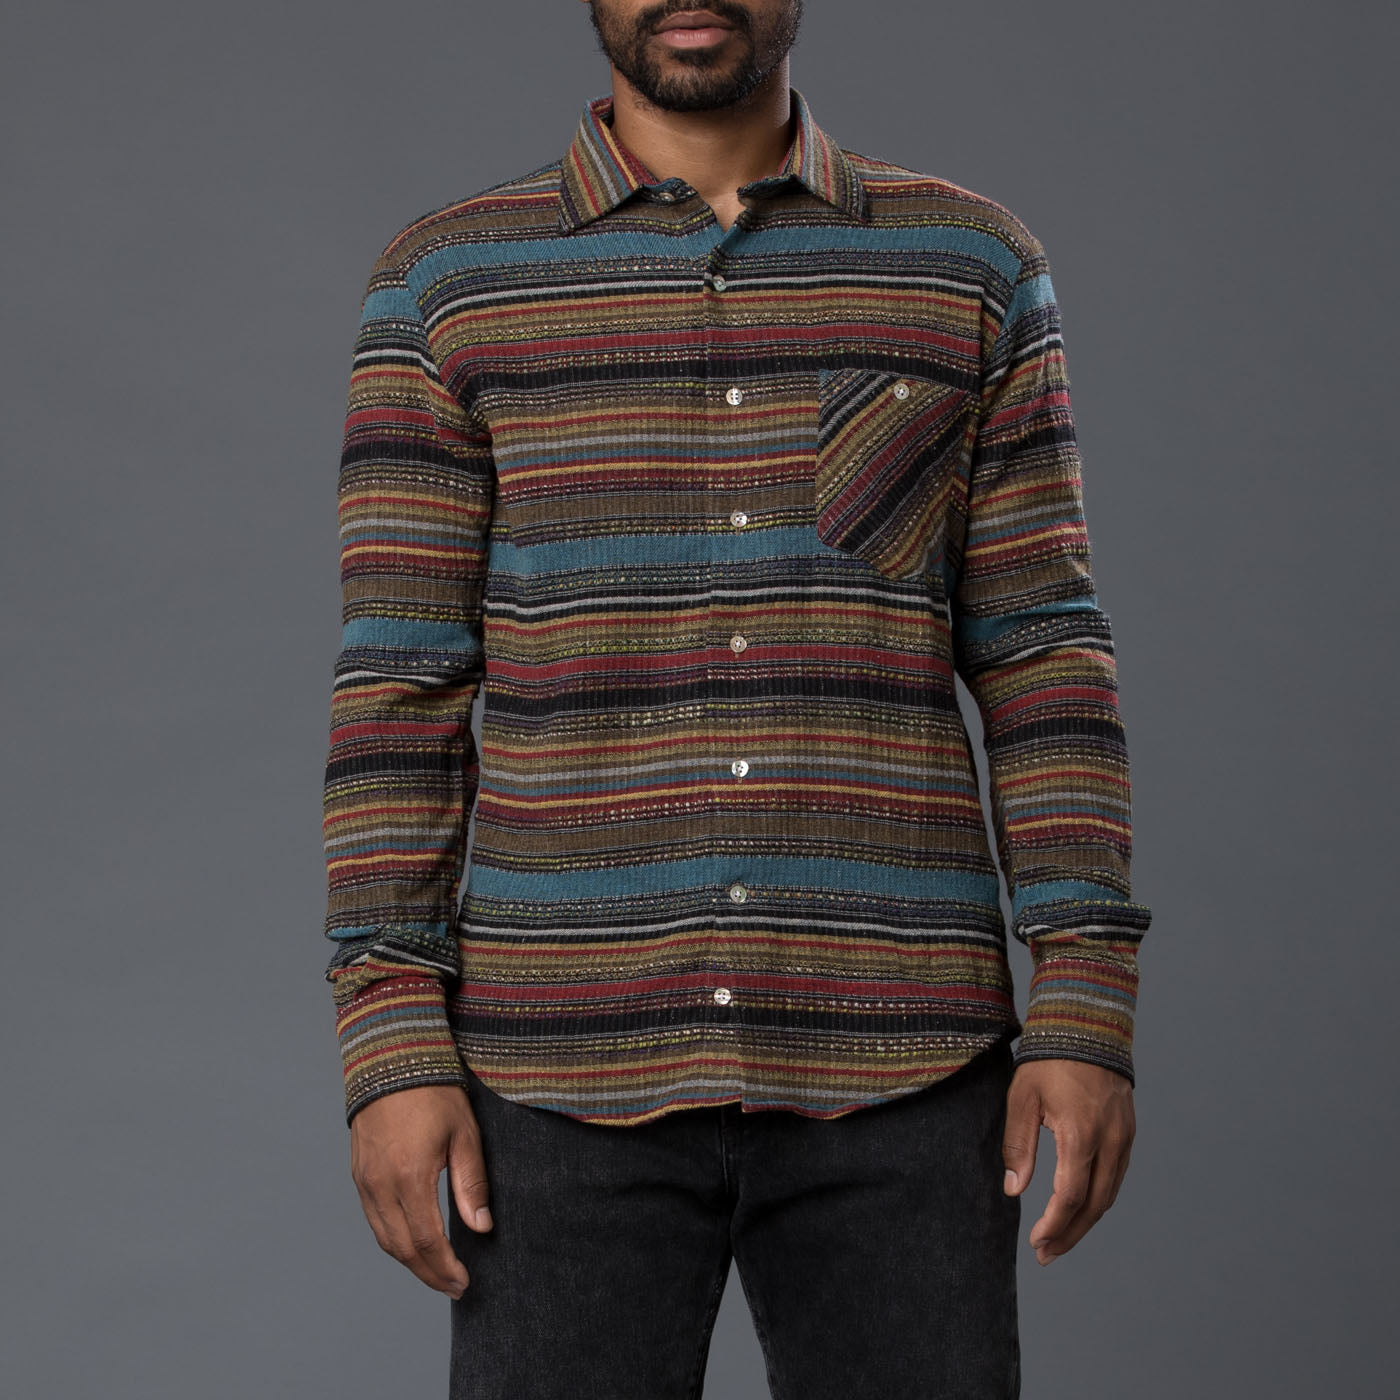 Freemans Sporting Club Striped Western Shirt